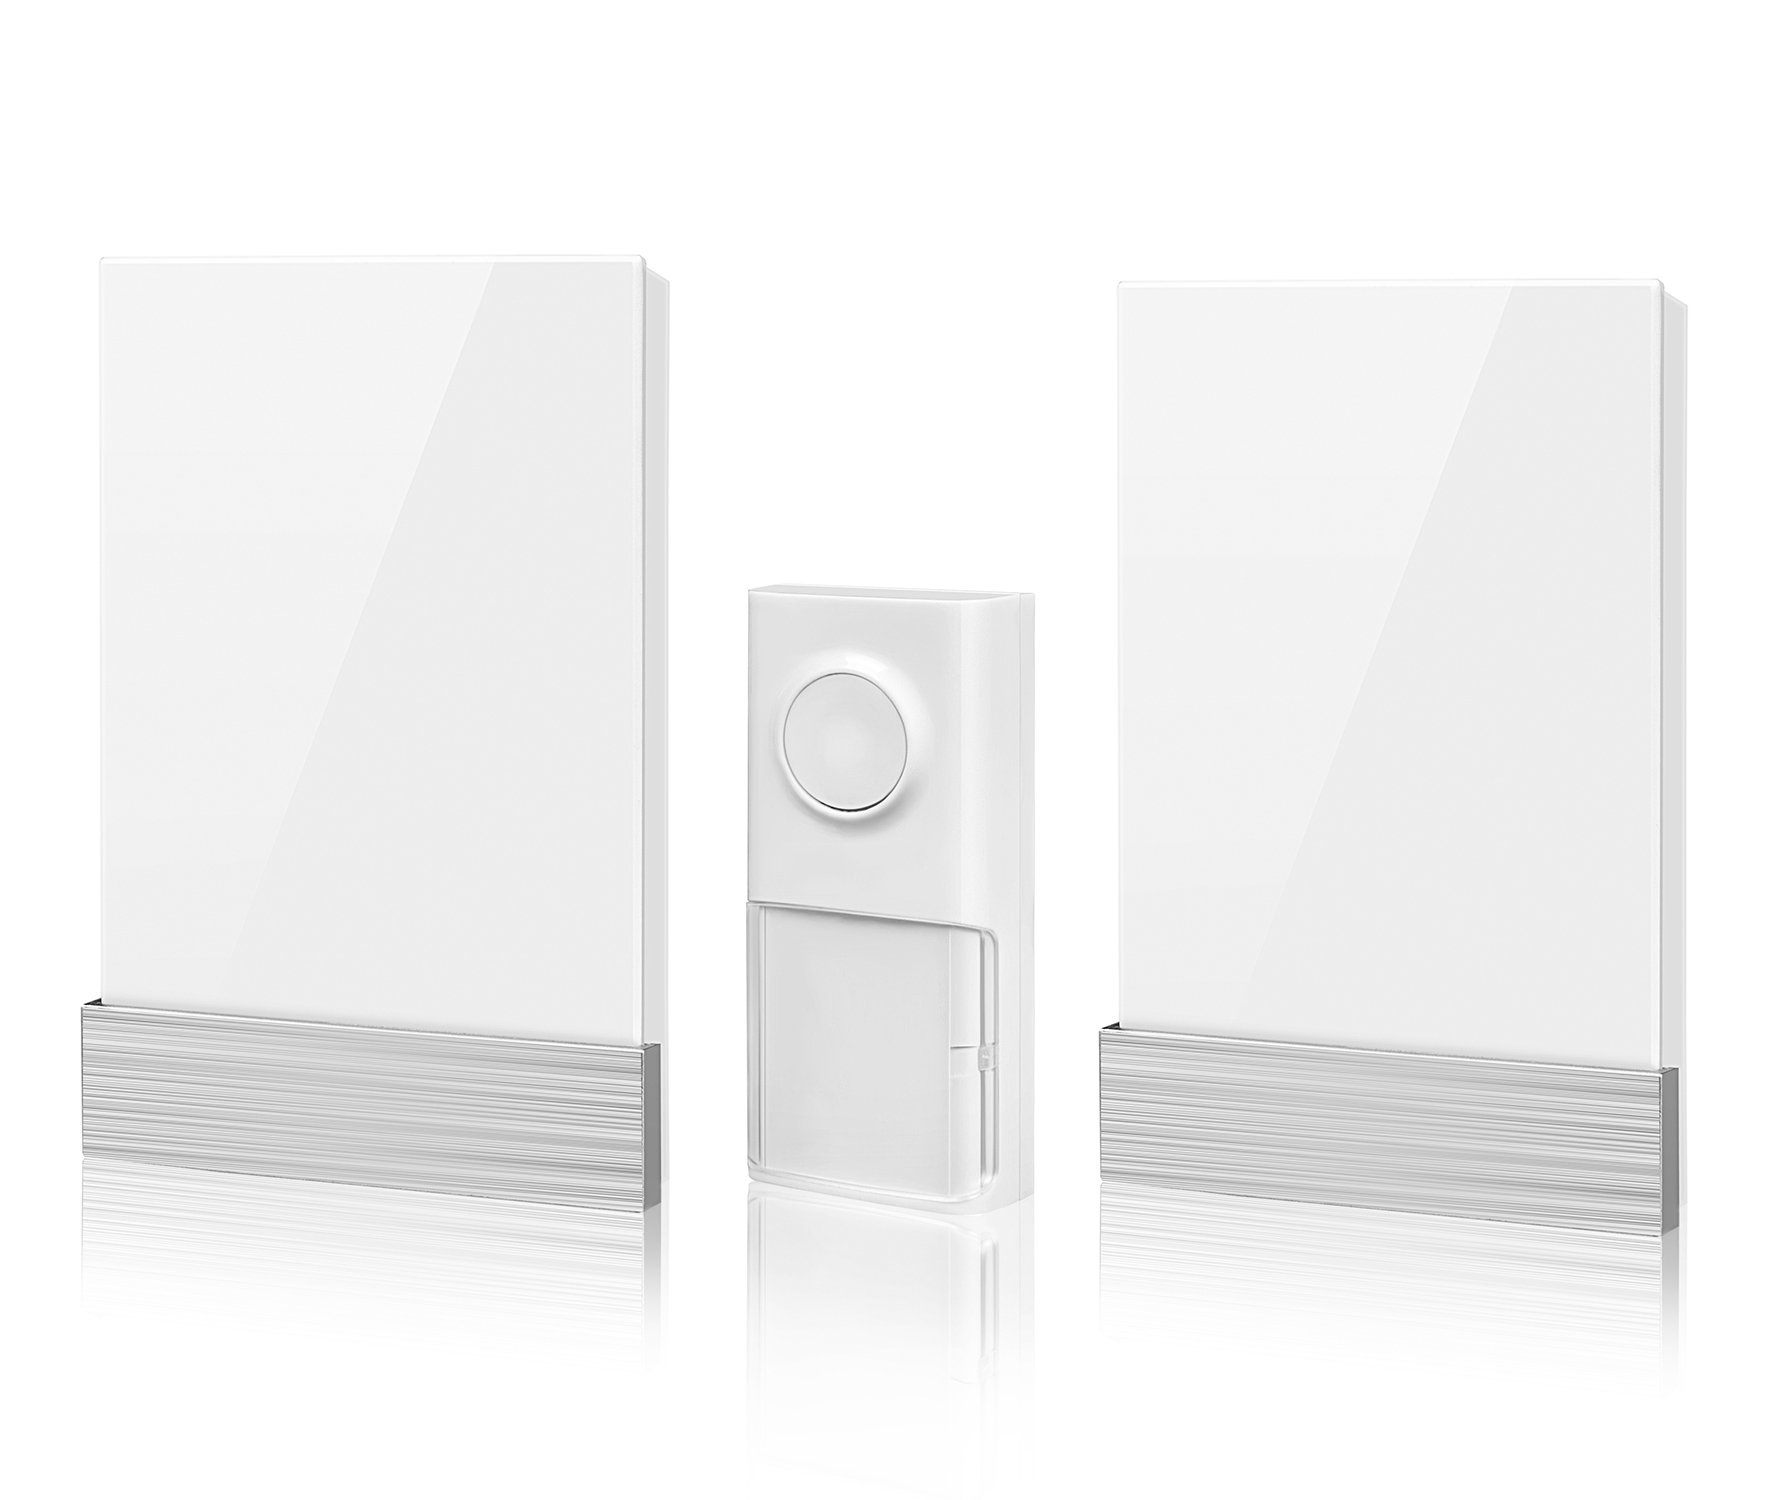 Wireless Doorbell, Nekteck Plug-in Doorbell Chime Battery-Free Kinetic Push Button Transmitter with Over 25 Musical Tones, 3 Volume Levels [150m Range/IP44 Water Proof] - [1 Button & 2 Plugin Chime]